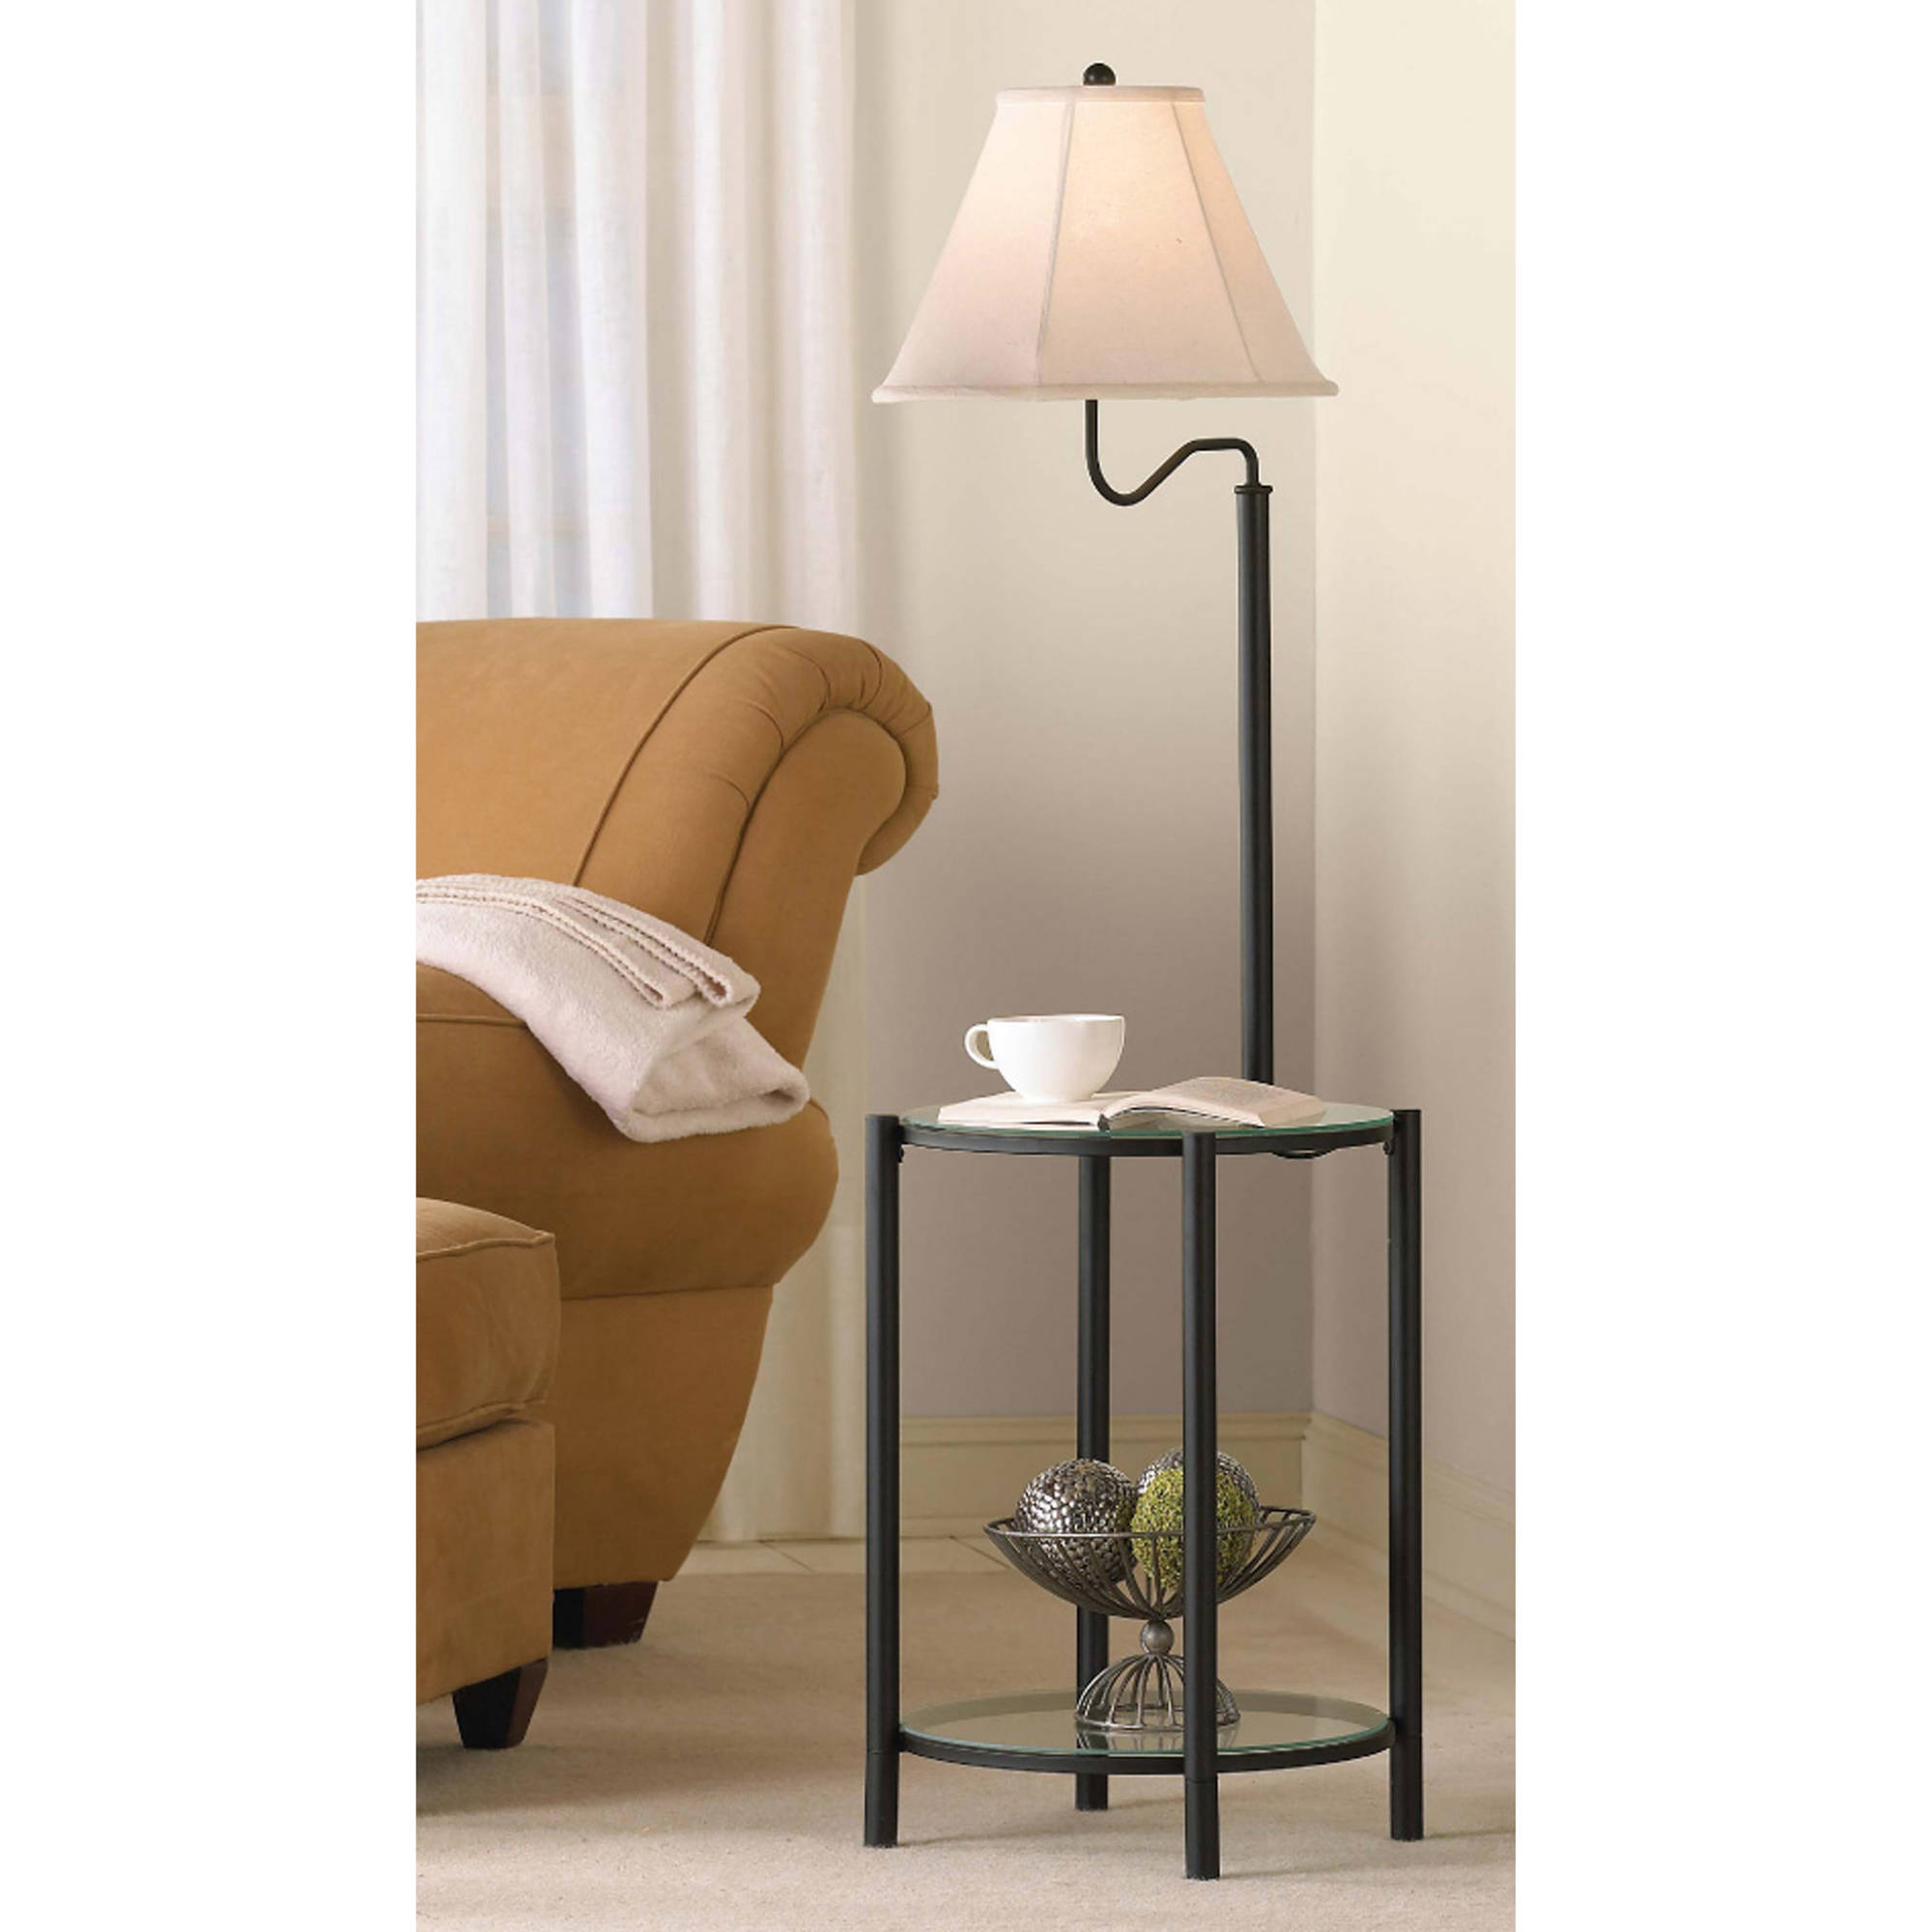 End Table With Lamp Built In Mainstays Glass End Table Floor Lamp Matte Black Cfl Bulb Included